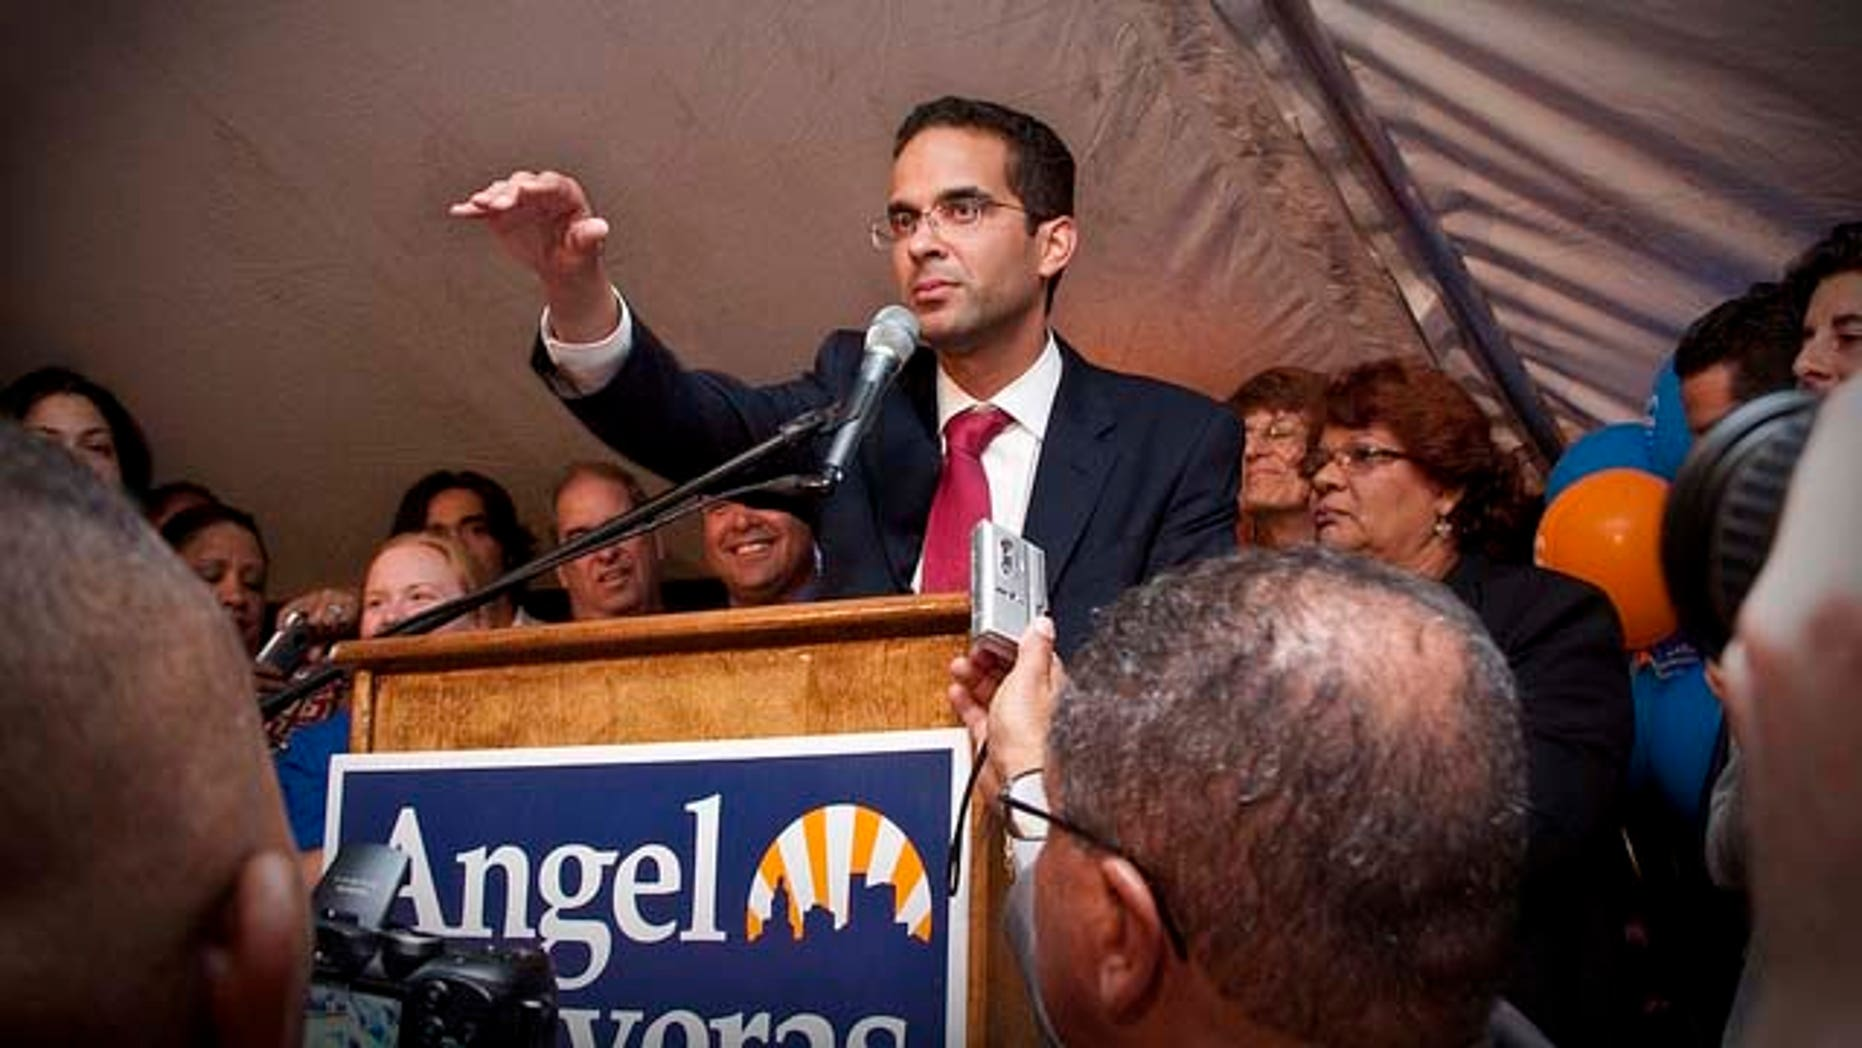 Angel Taveras is on the verge of becoming Providence's first Latino mayor. The son of immigrants has been viewed as a role model for younger Dominicans.